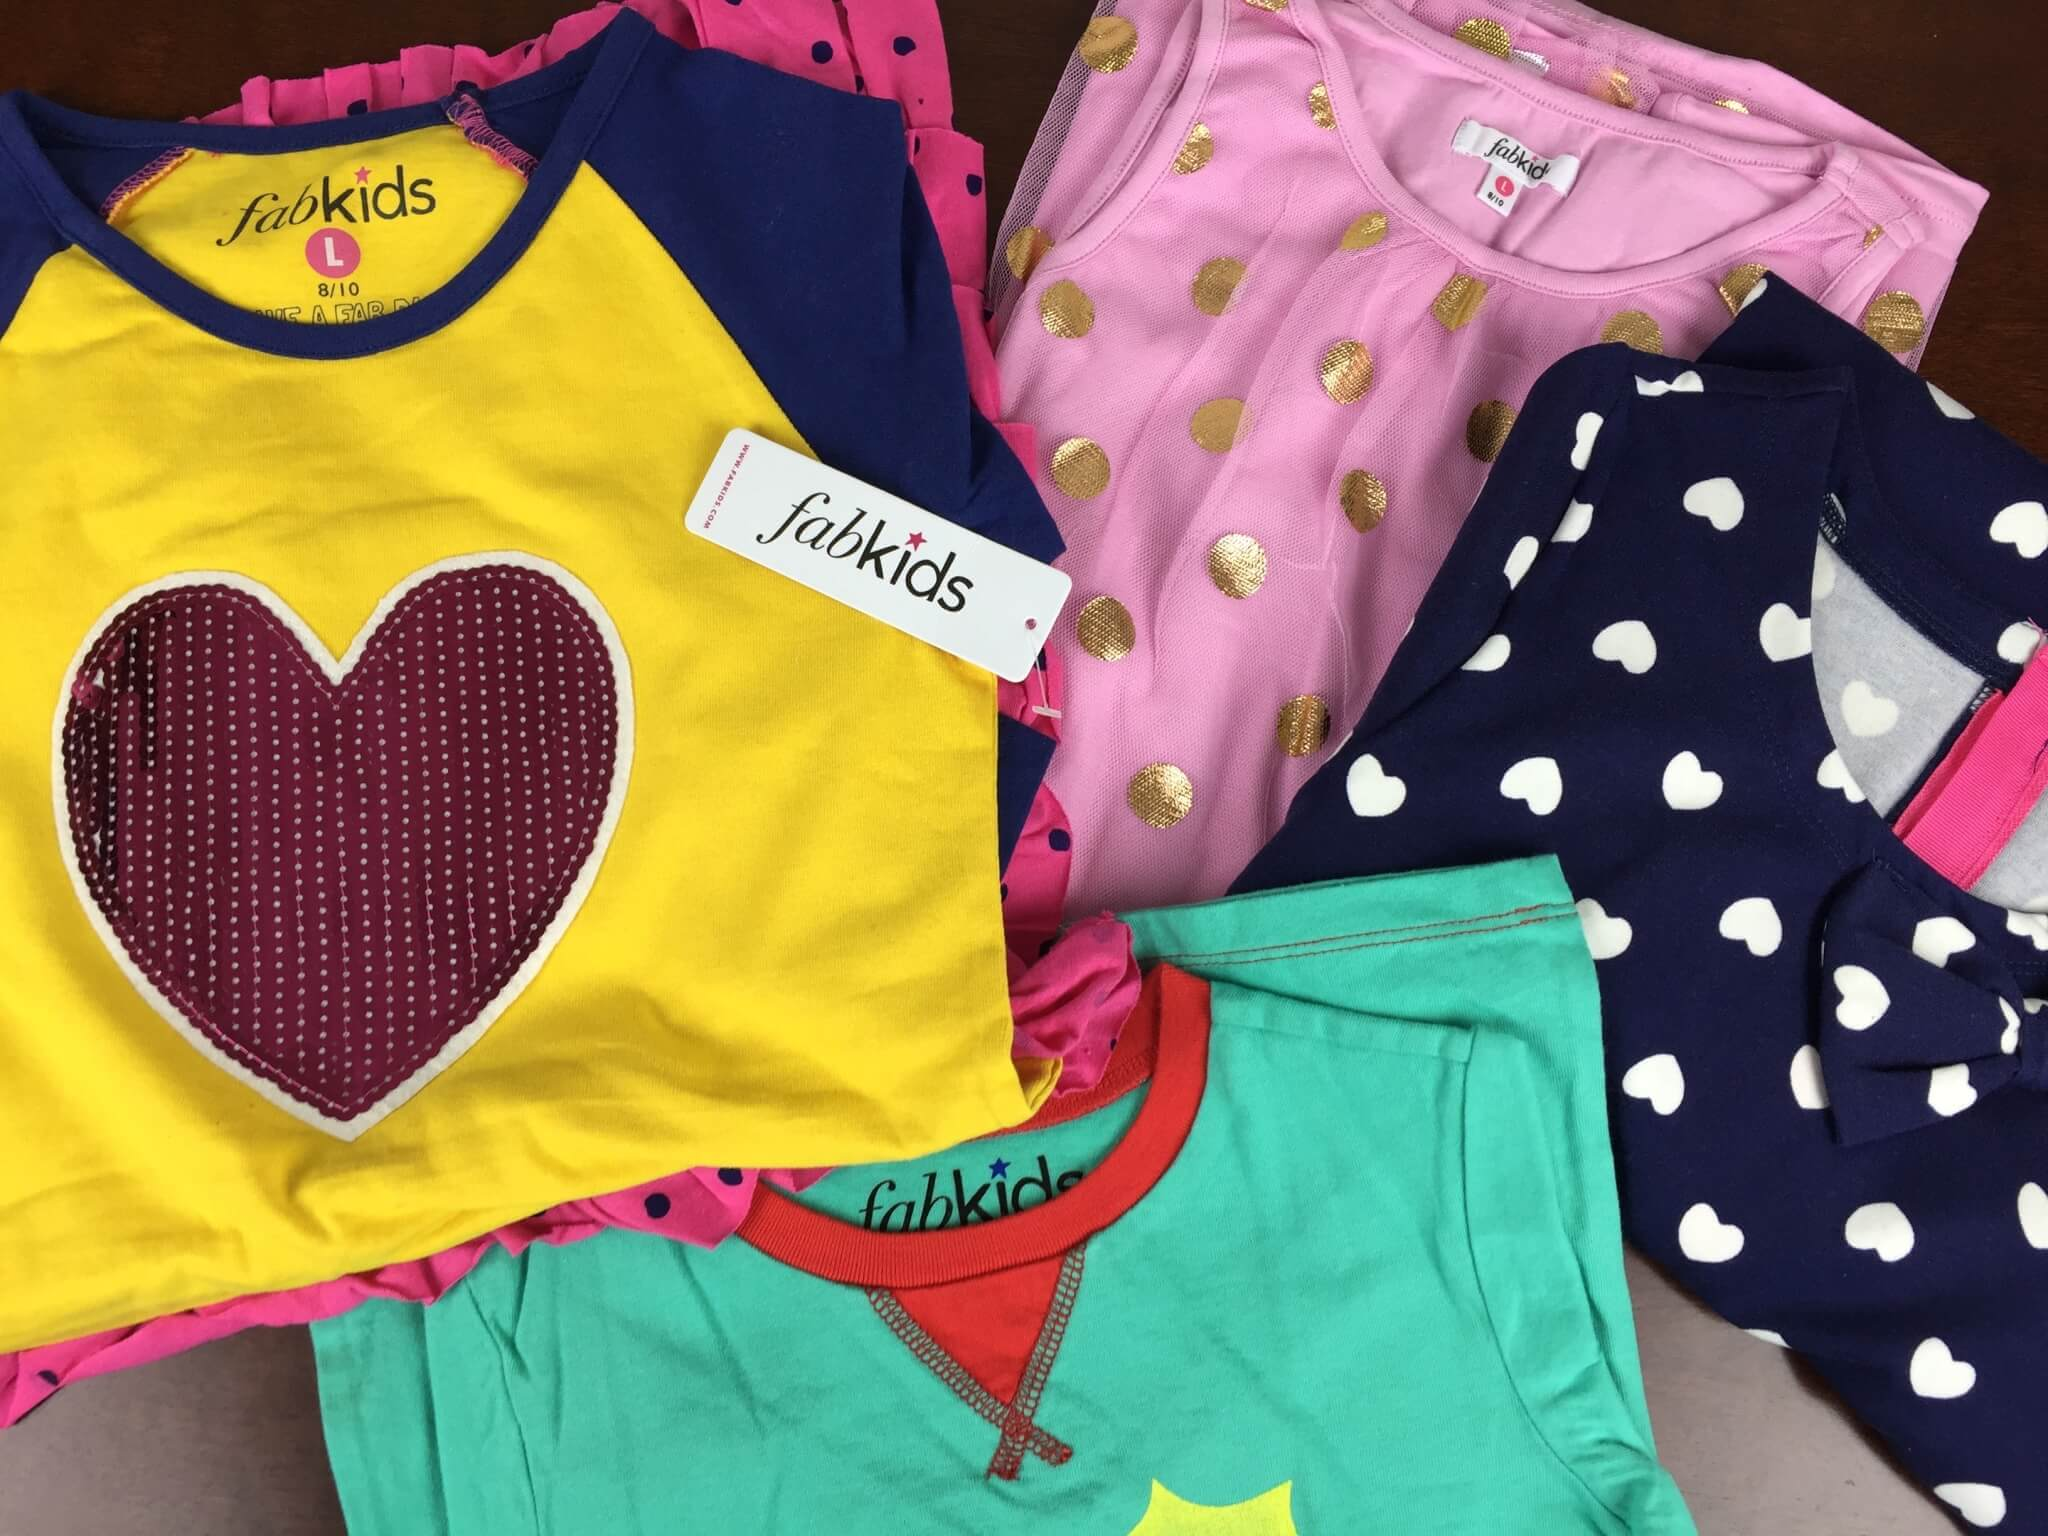 October 2015 Fabkids Subscription Review & Half Off Coupon